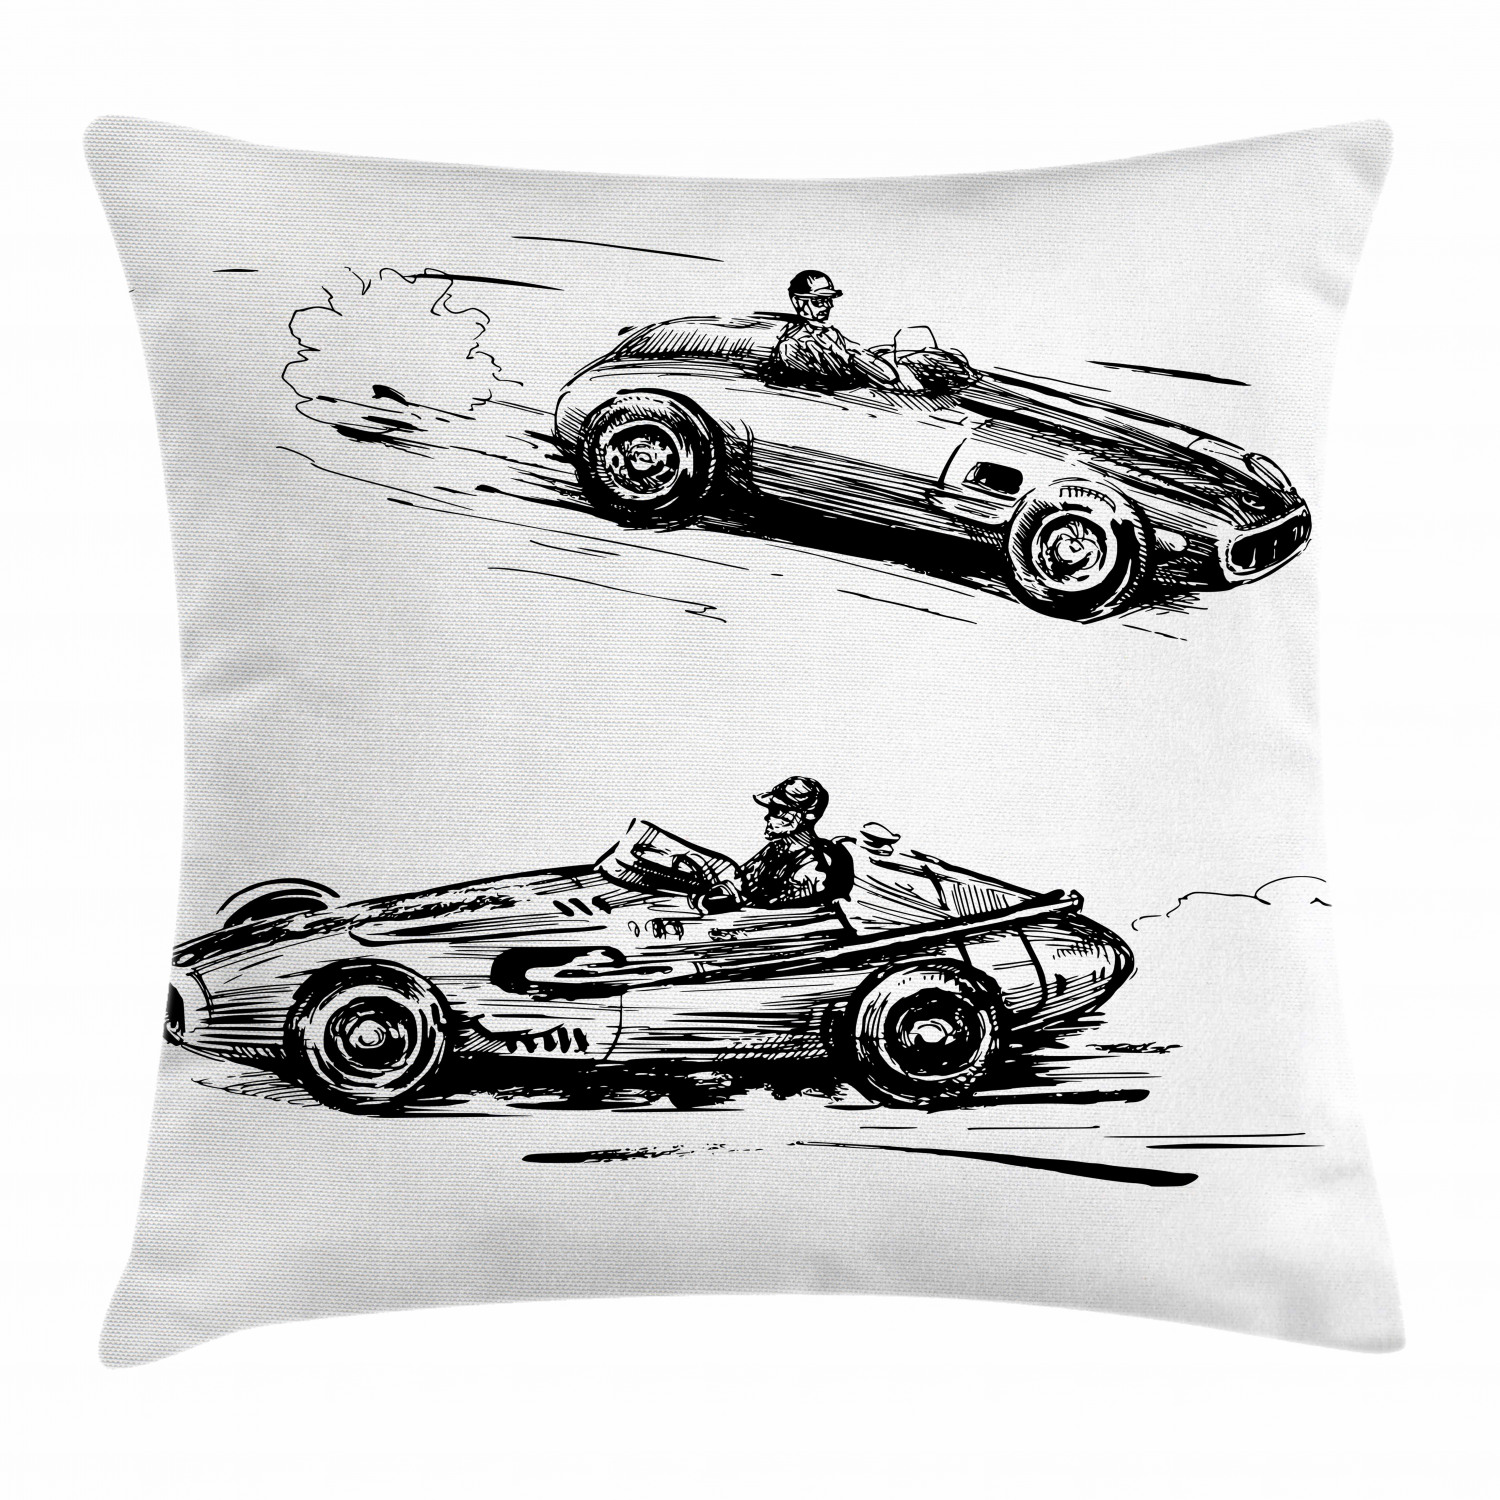 cars throw pillow cushion cover vintage racing cars hand drawn style collection nostalgic automobile sketch artwork decorative square accent pillow